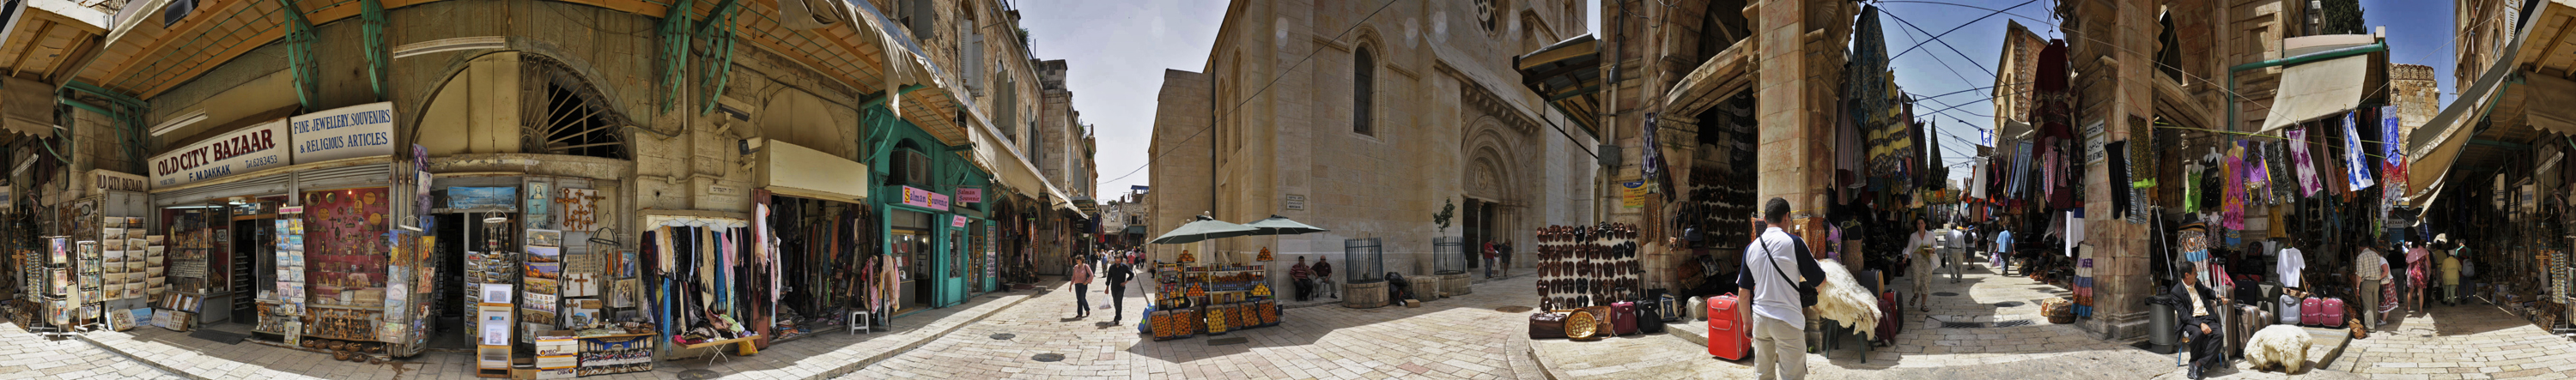 Looking around in JERUSALEM (Pano)...